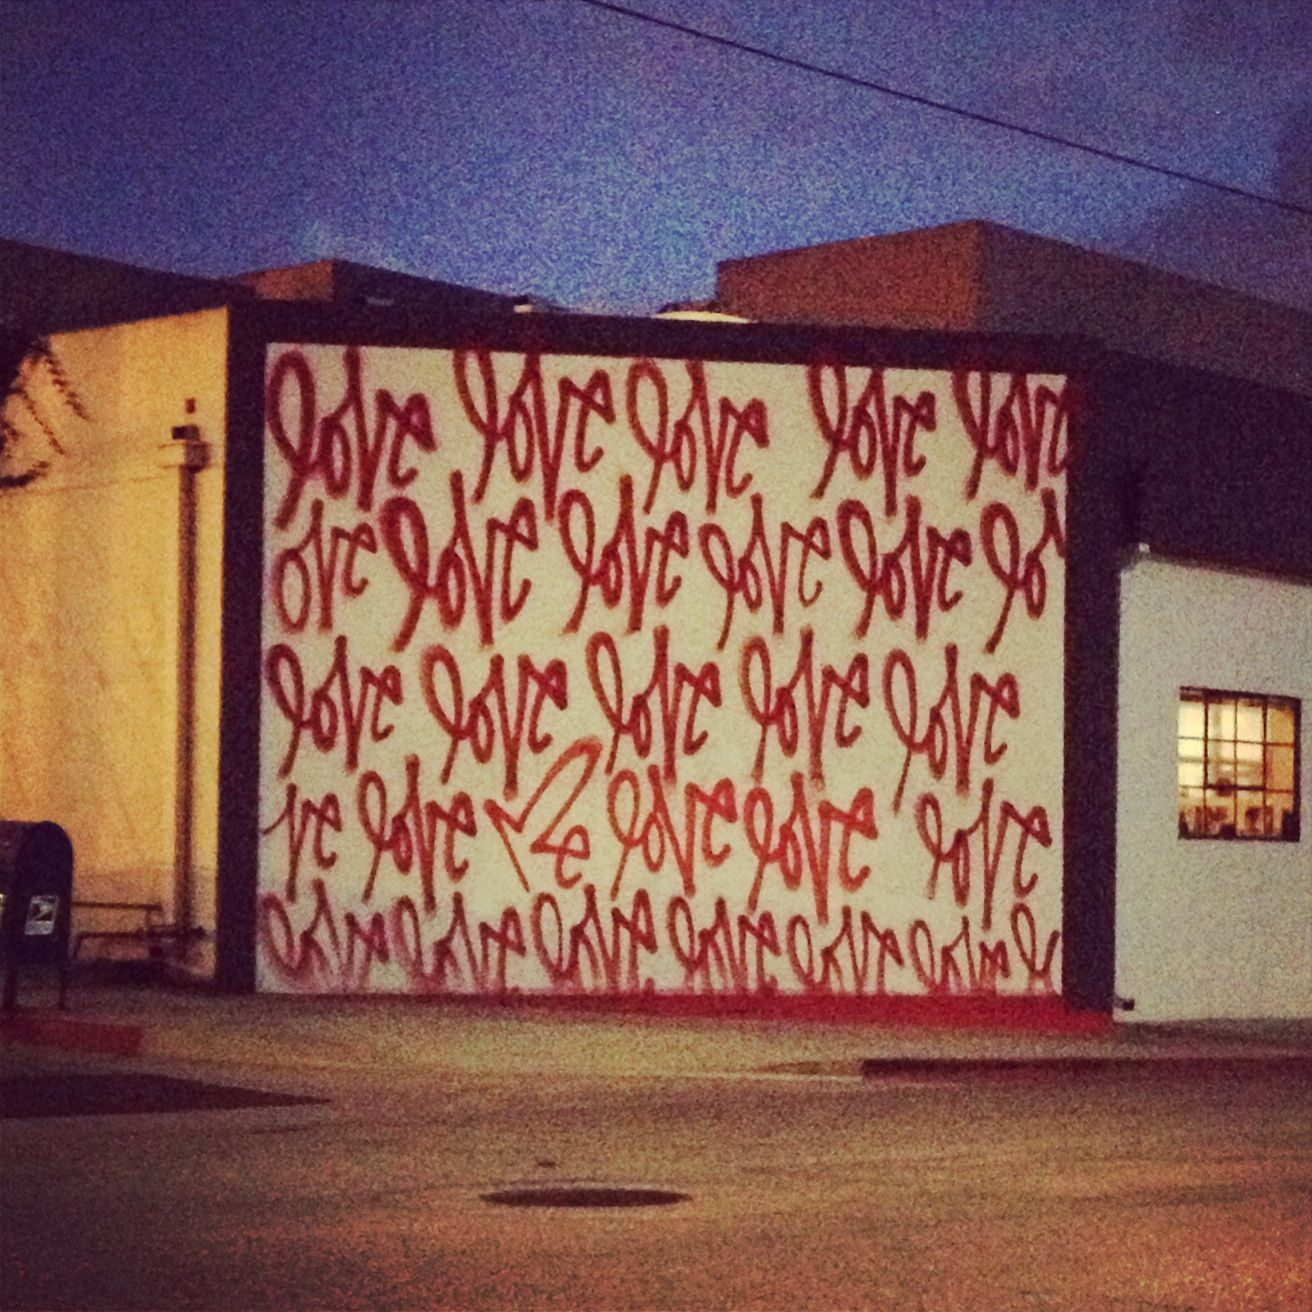 Curtis kuligs love me graffiti in culver city corner of hayden avenue and webster drive